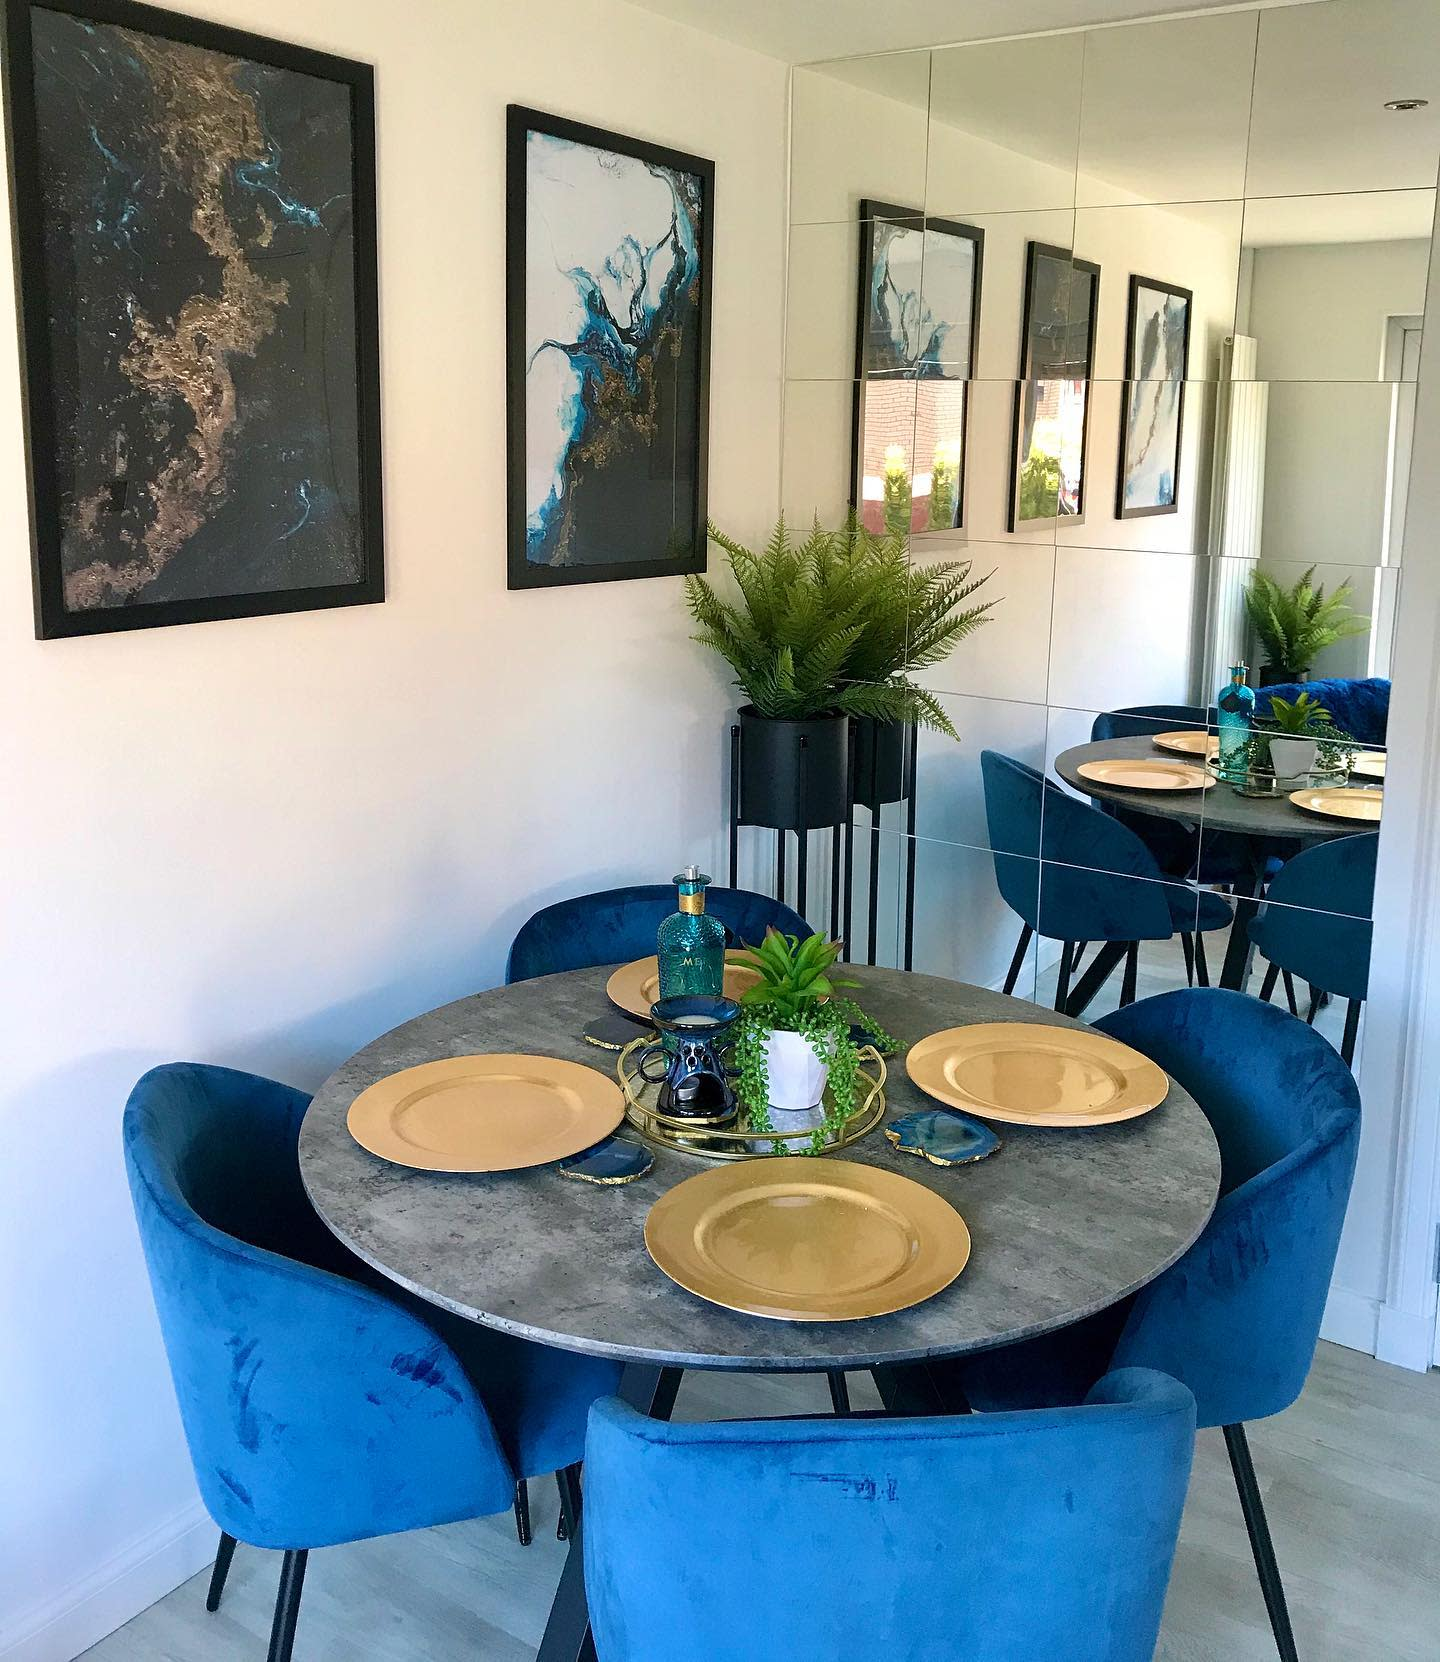 Mirror Dining Room Wall Decor Ideas -our_wedge_home